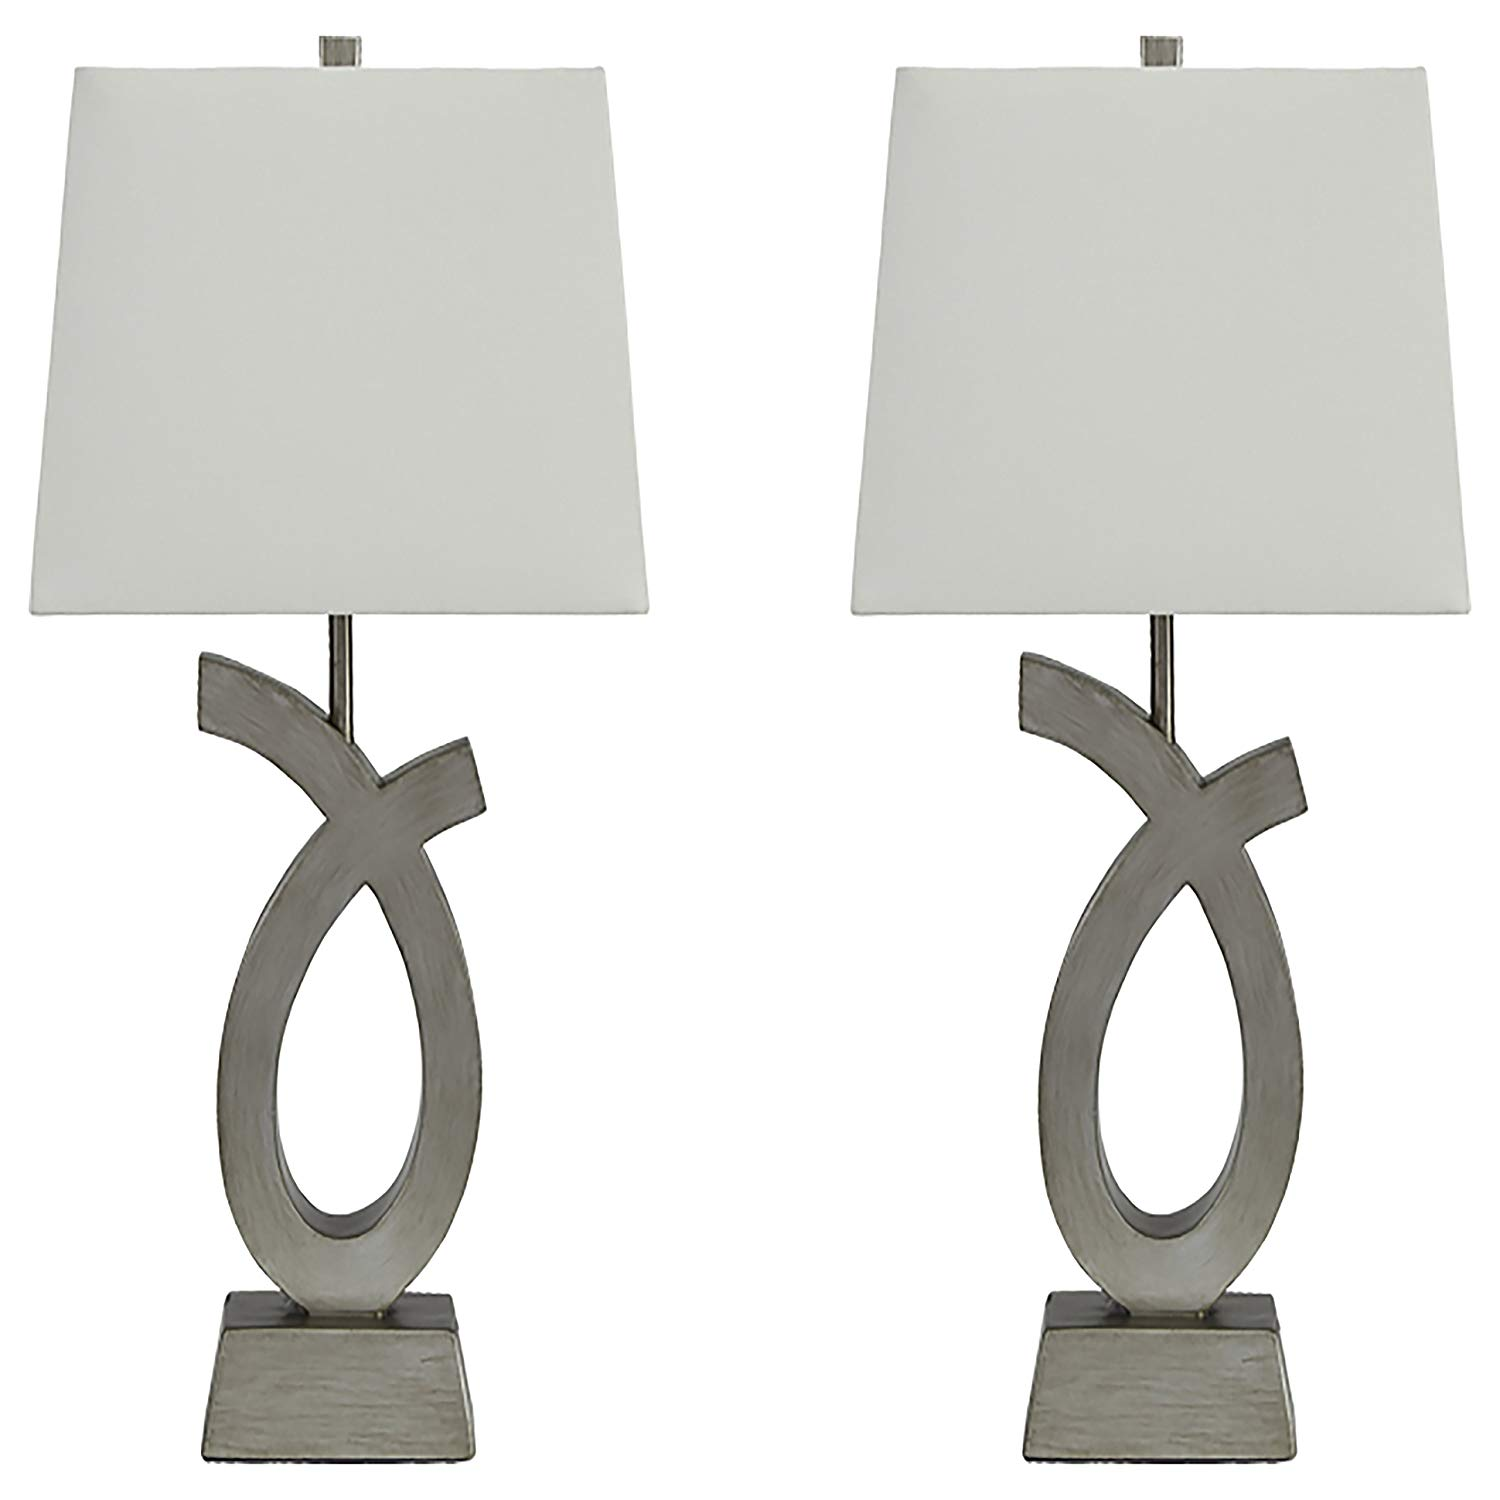 ashley furniture signature design eta table lamps set plus accent tables artistic base silver finish rolling tool cabinet pendant lamp ceramic end stool tall slim bedside cabinets